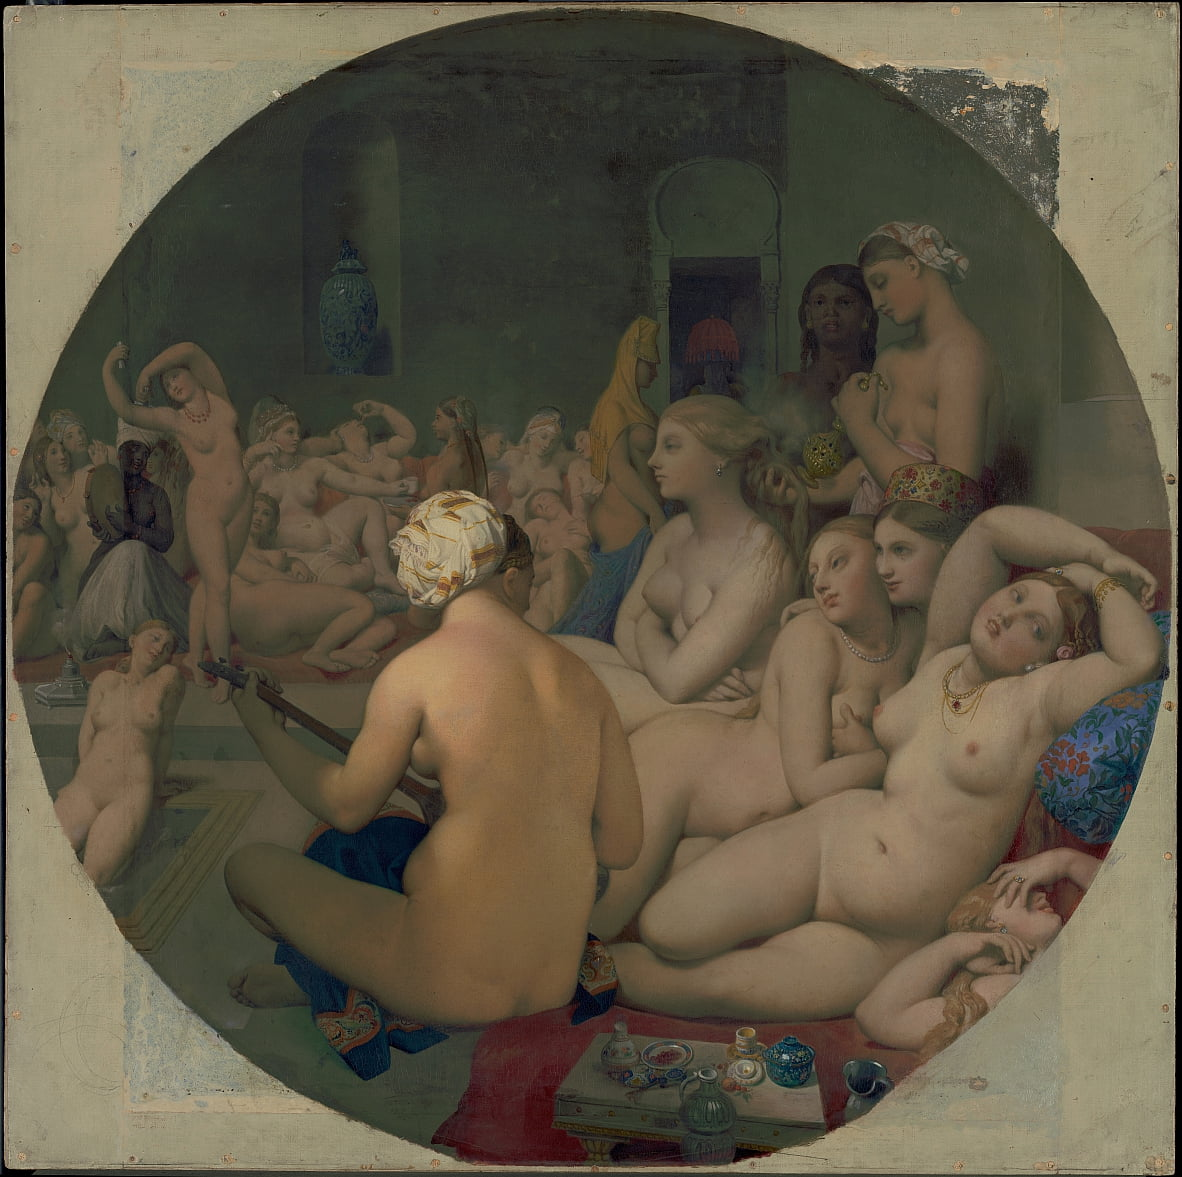 Le Bain Turc by Jean Auguste Dominique Ingres